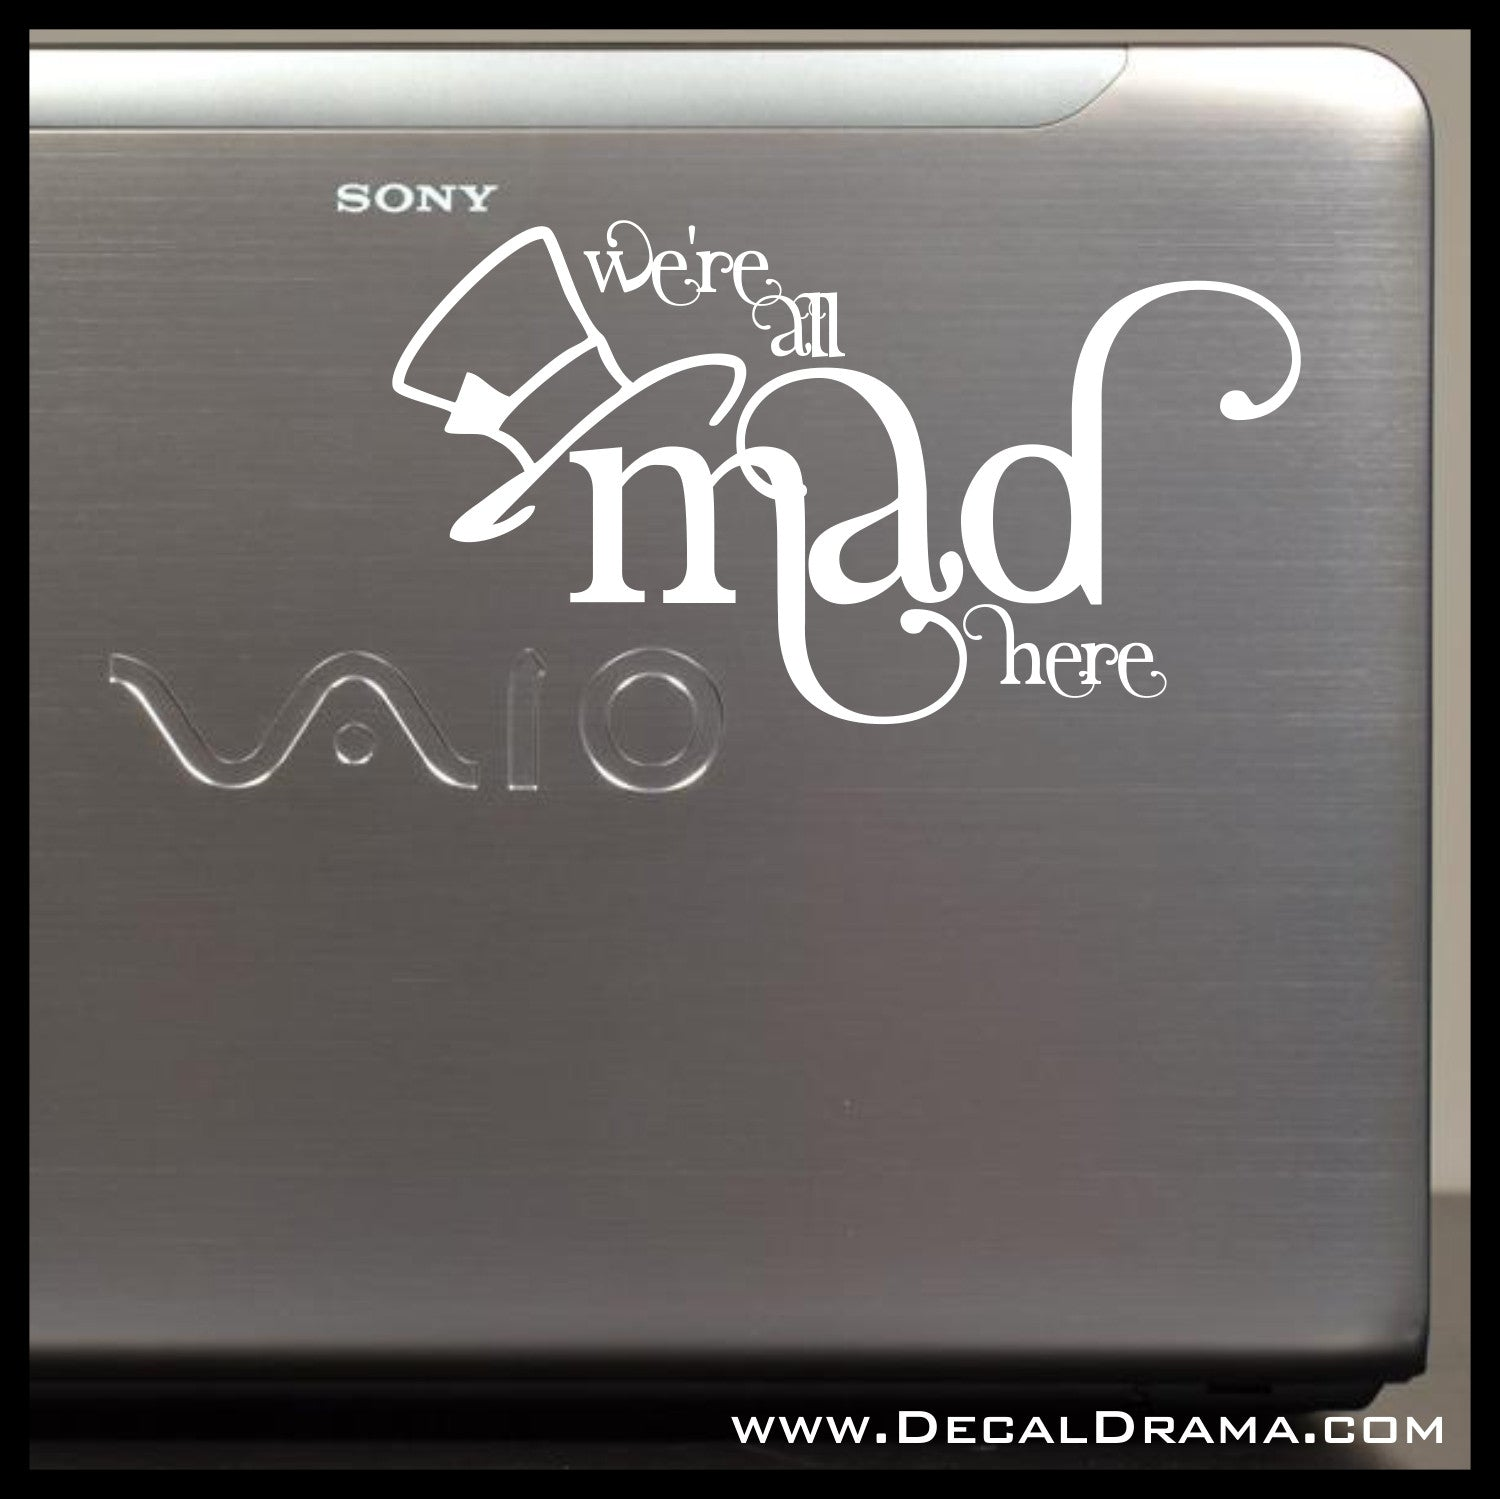 We're All Mad Here, Mad Hatter-inspired Vinyl Car/Laptop Decal